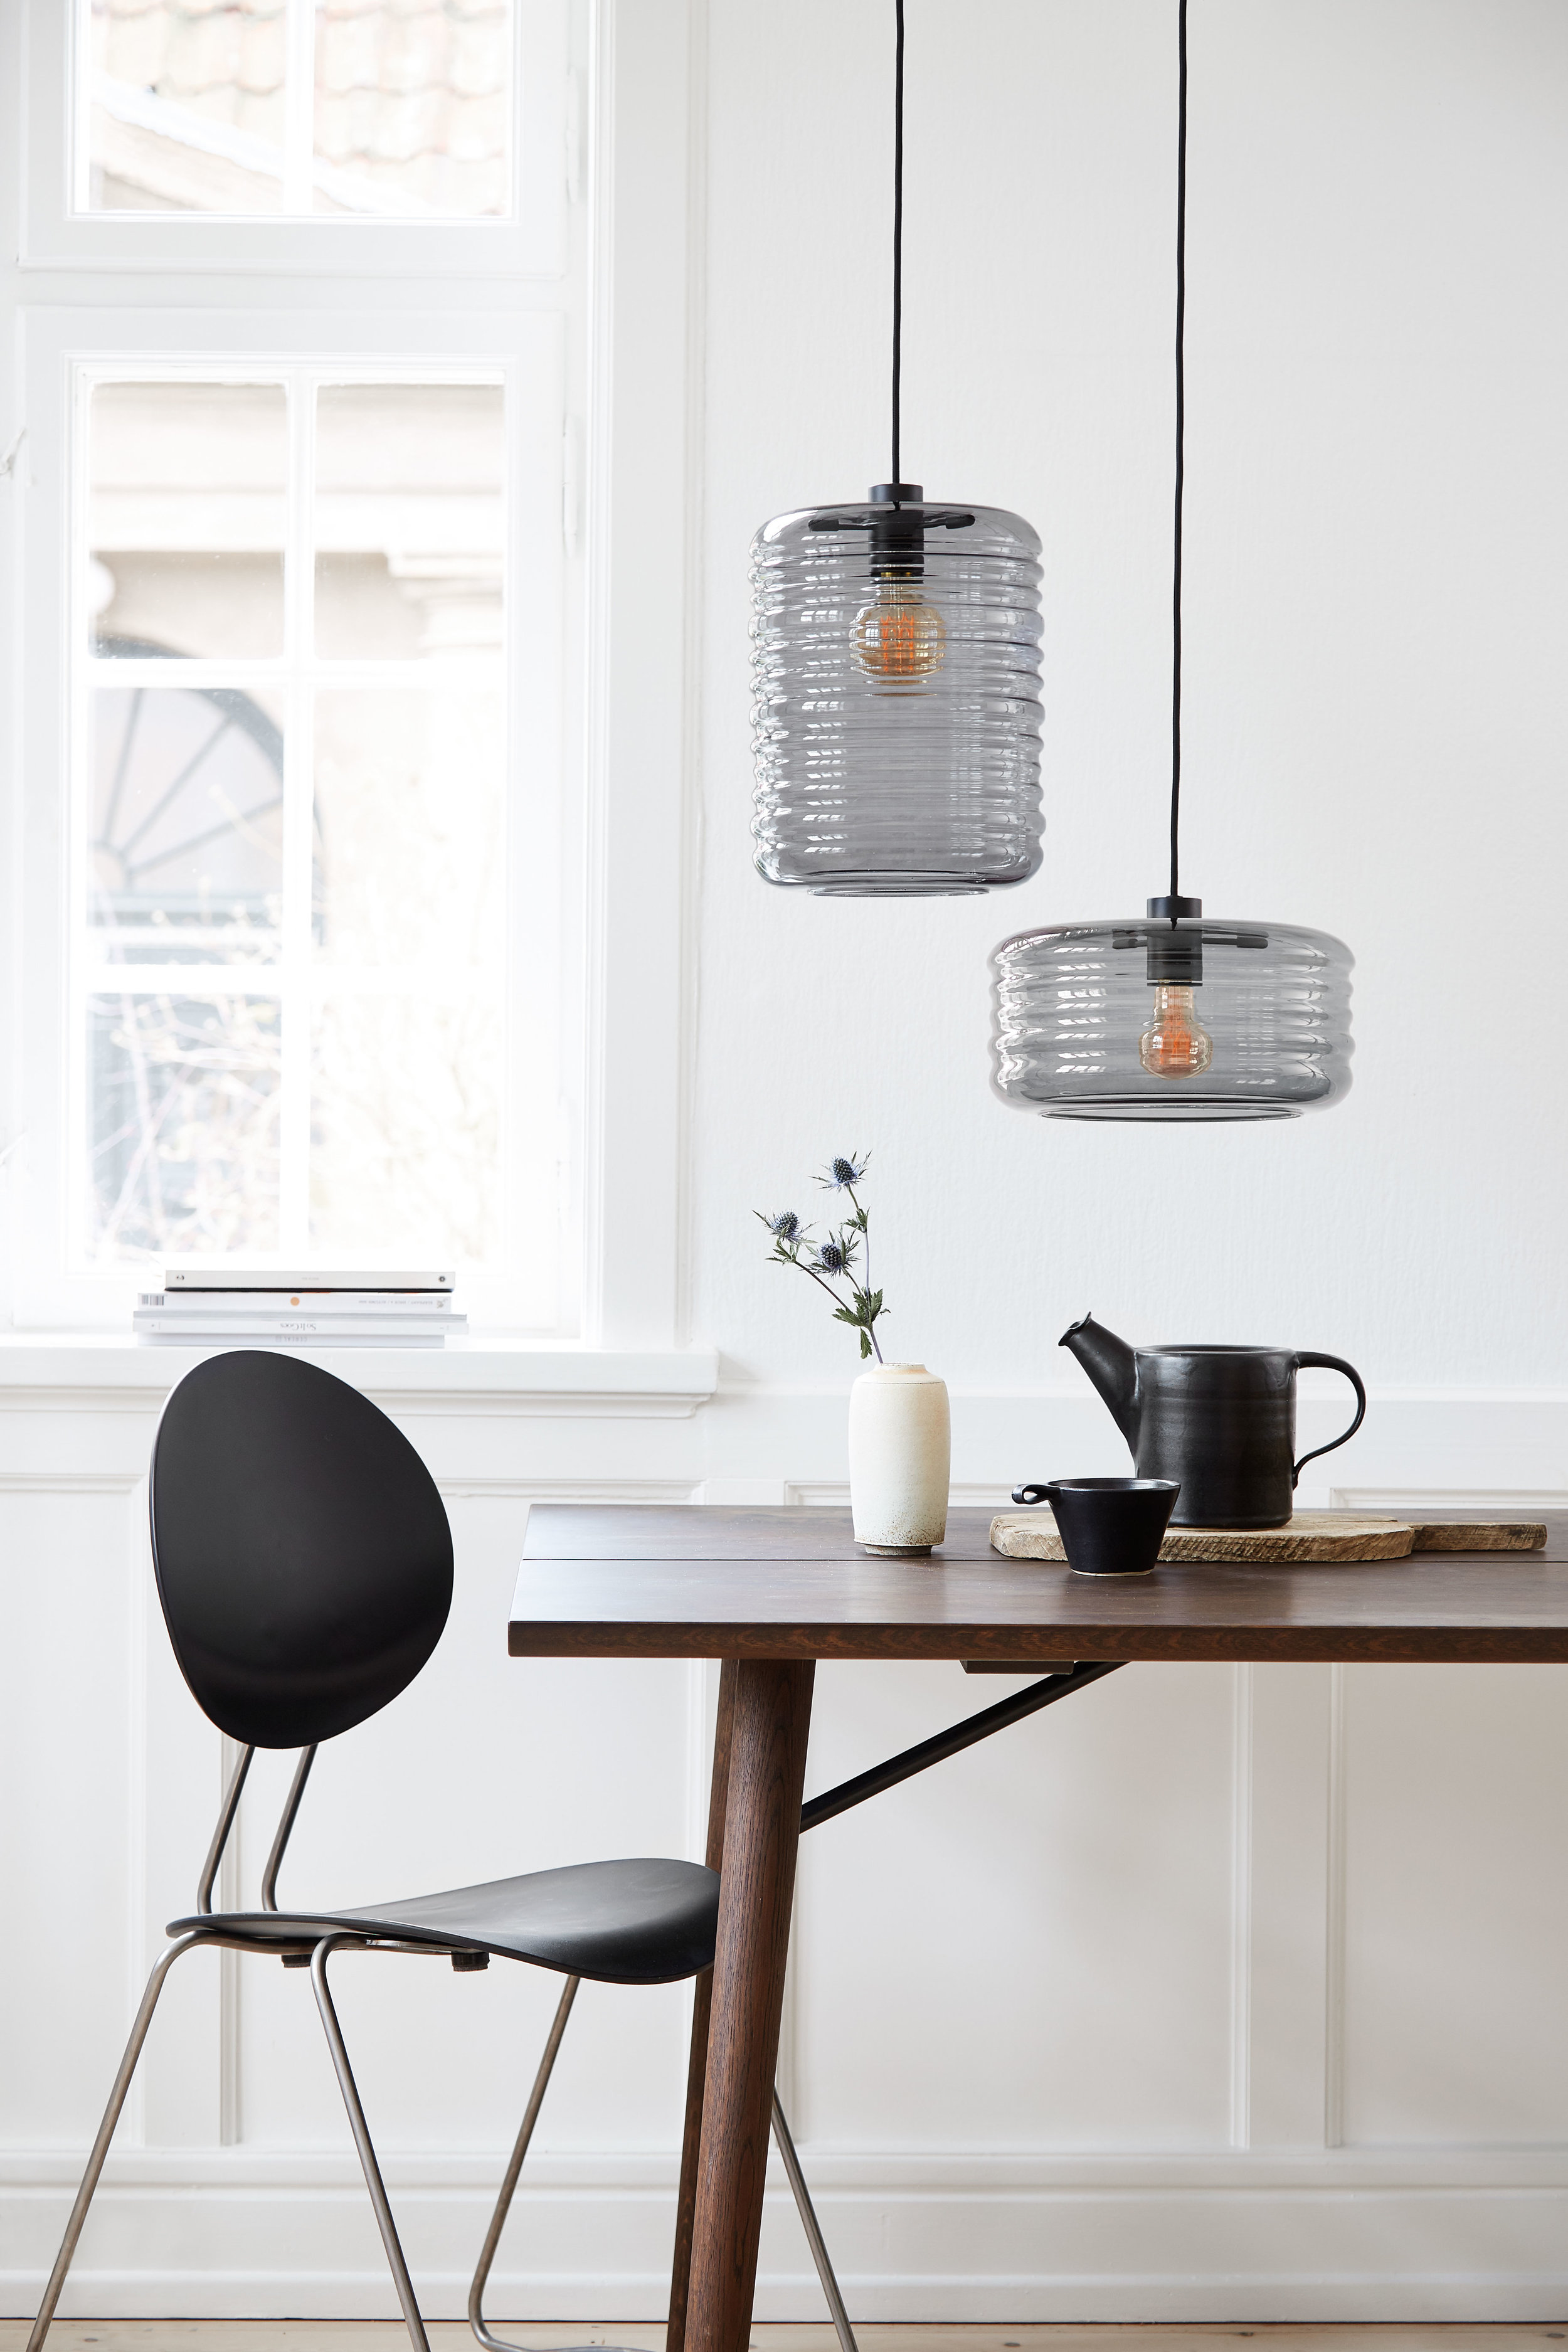 """""""Coloured glass, one of this year's strongest trends, strikes a lovely, slightly solemn atmosphere in the home. The new Wheels lamp series from Frandsen Retail is no exception, bringing light and warmth into the home with its smoked glass shades.""""   READ"""